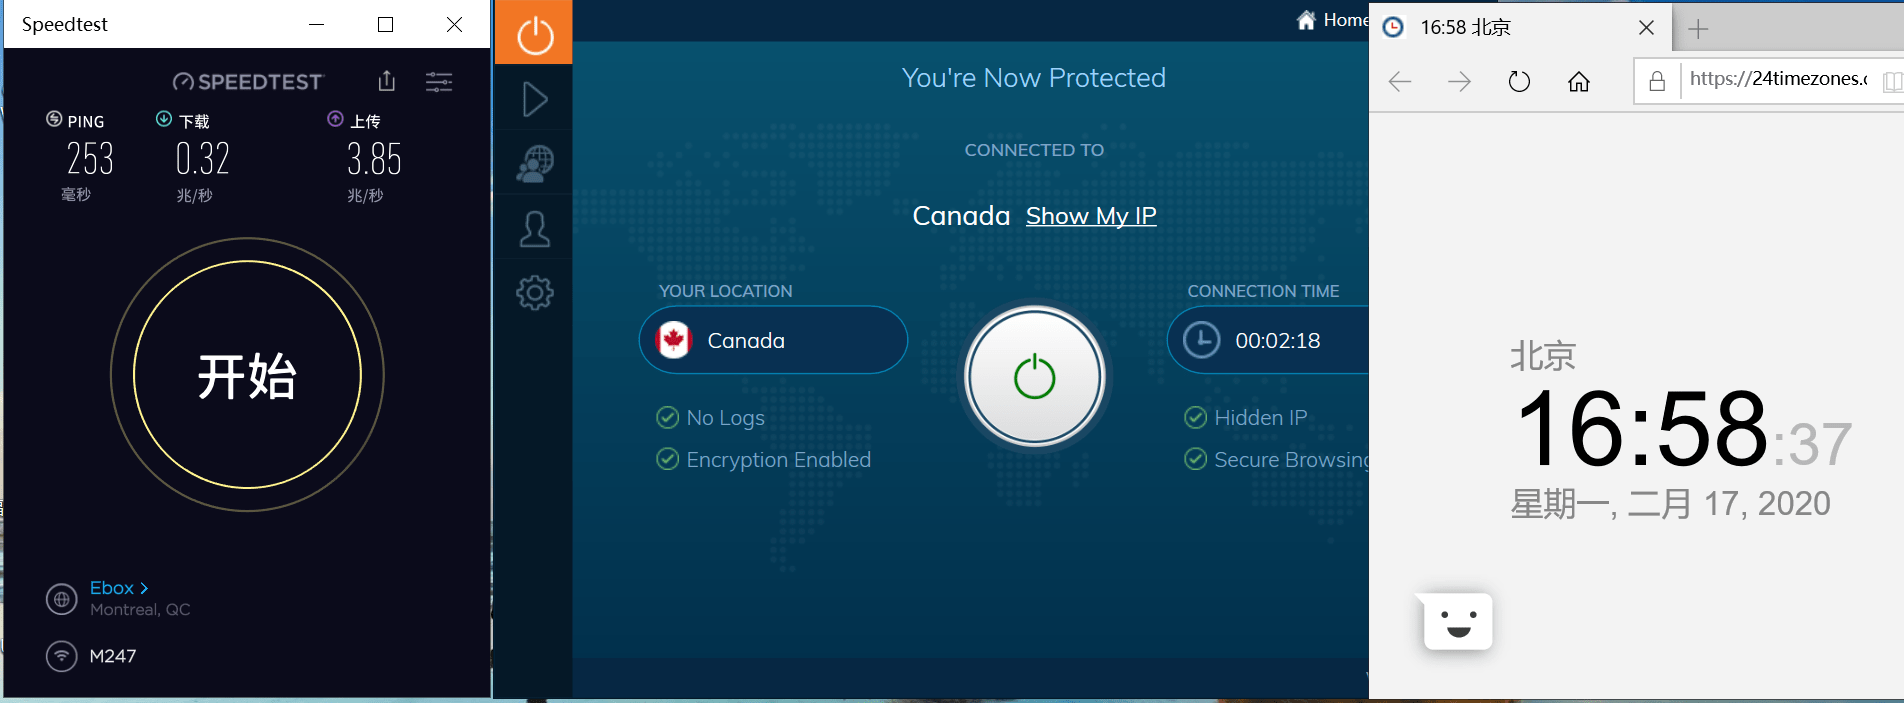 Windows10 IvacyVPN Canada 中国VPN翻墙 科学上网 SpeedTest测试-20200217